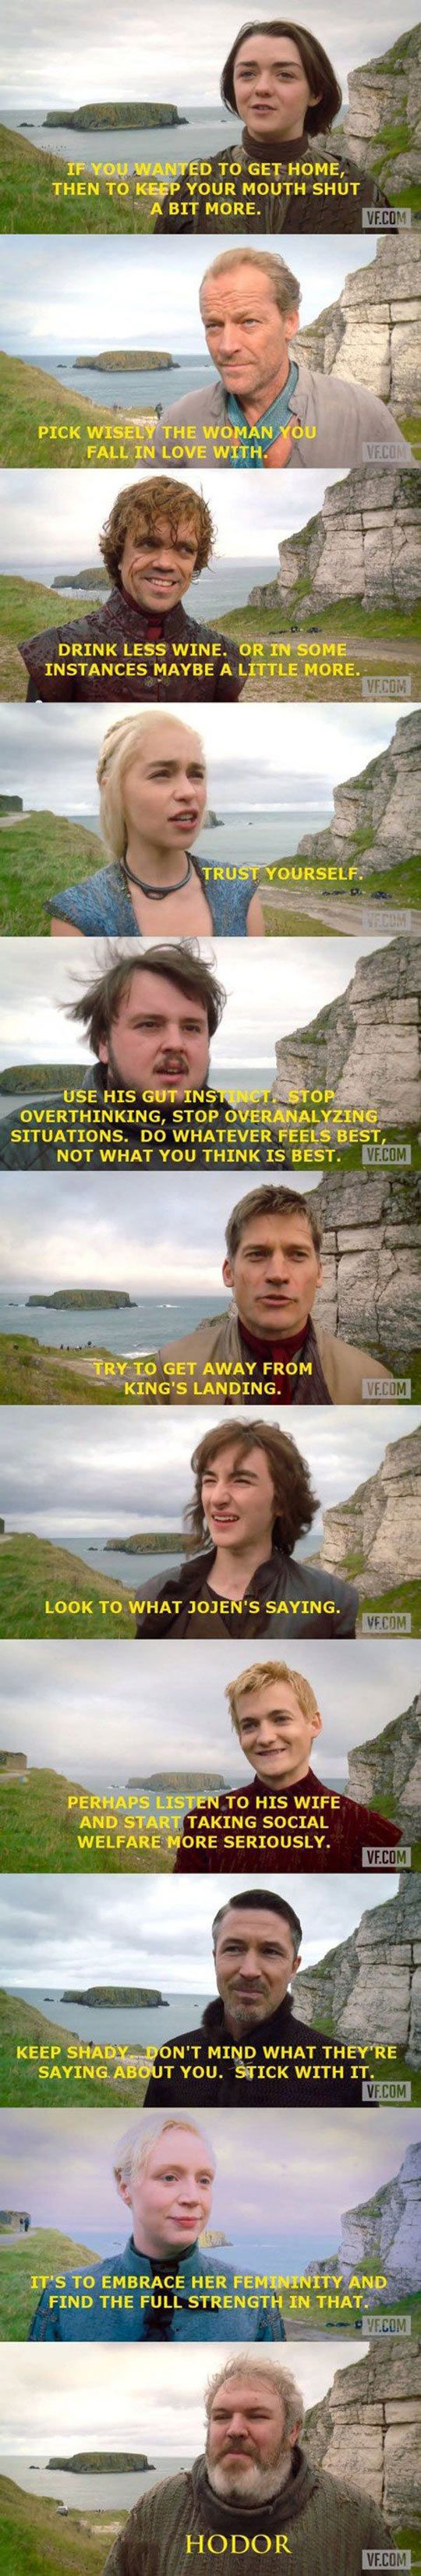 Game Of Thrones Actors Give Their Own Characters Advice  This cracked me up! Especially Baelish and Hodor!